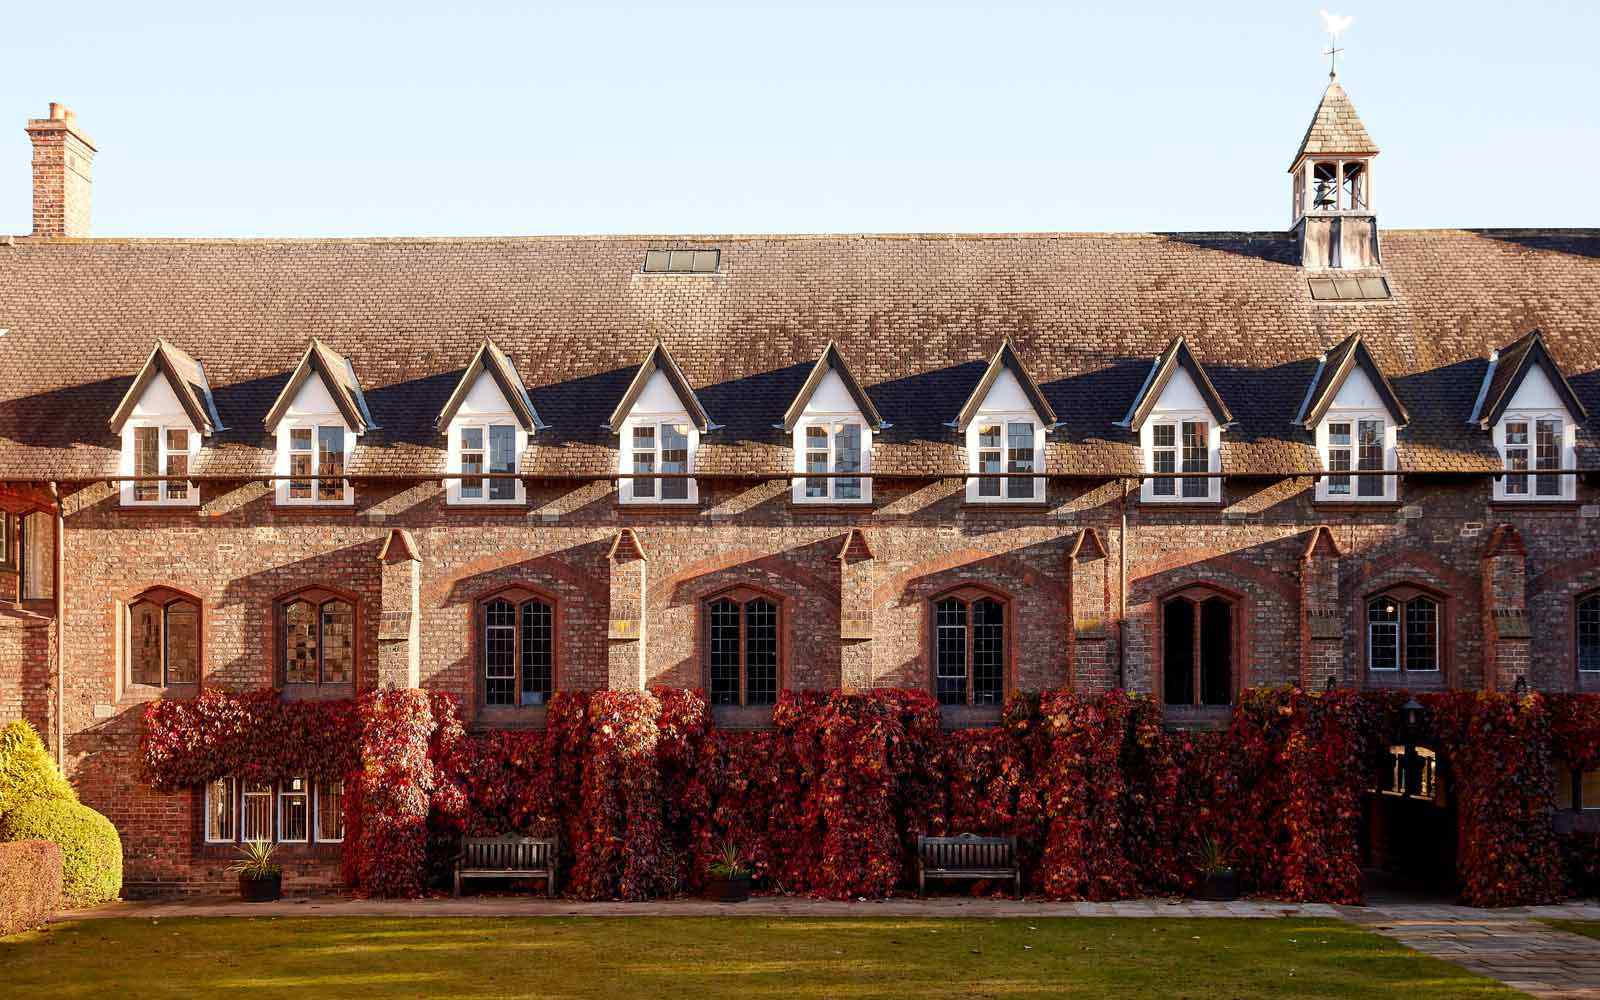 View of the brick buildings of the historic quad on campus, with autumnal leaves.